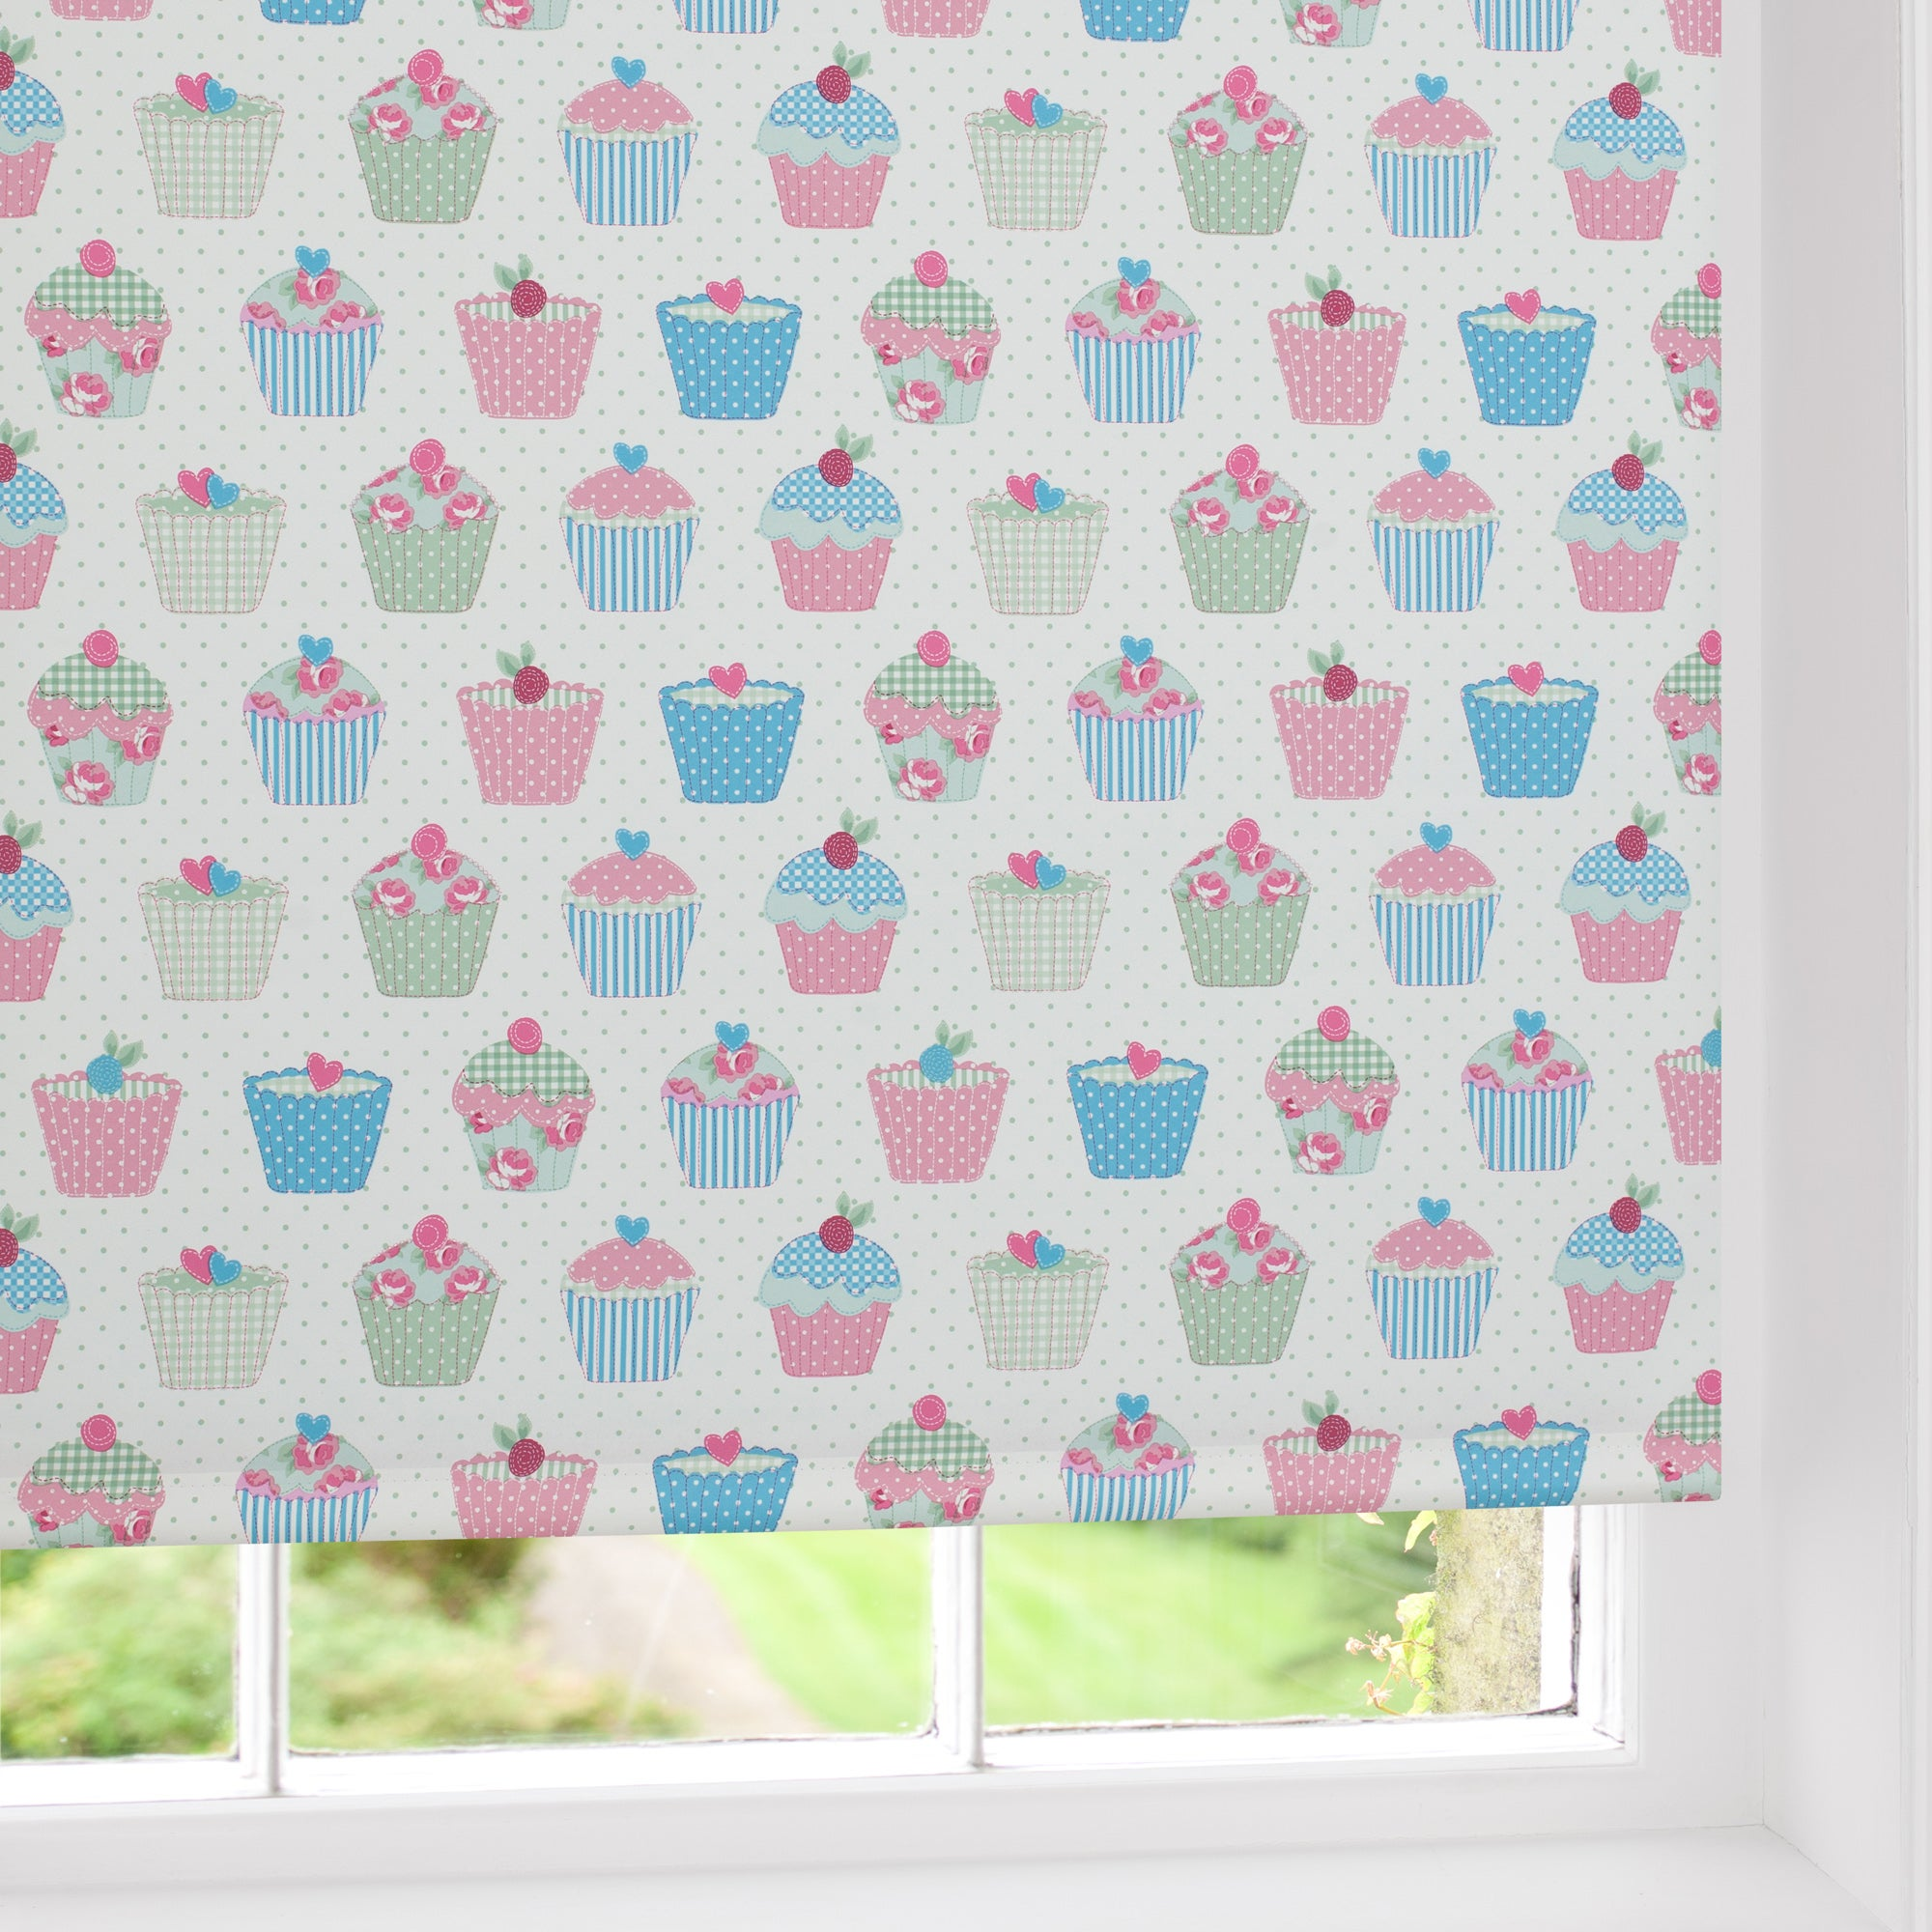 cupcakes blackout roller blind dunelm. Black Bedroom Furniture Sets. Home Design Ideas